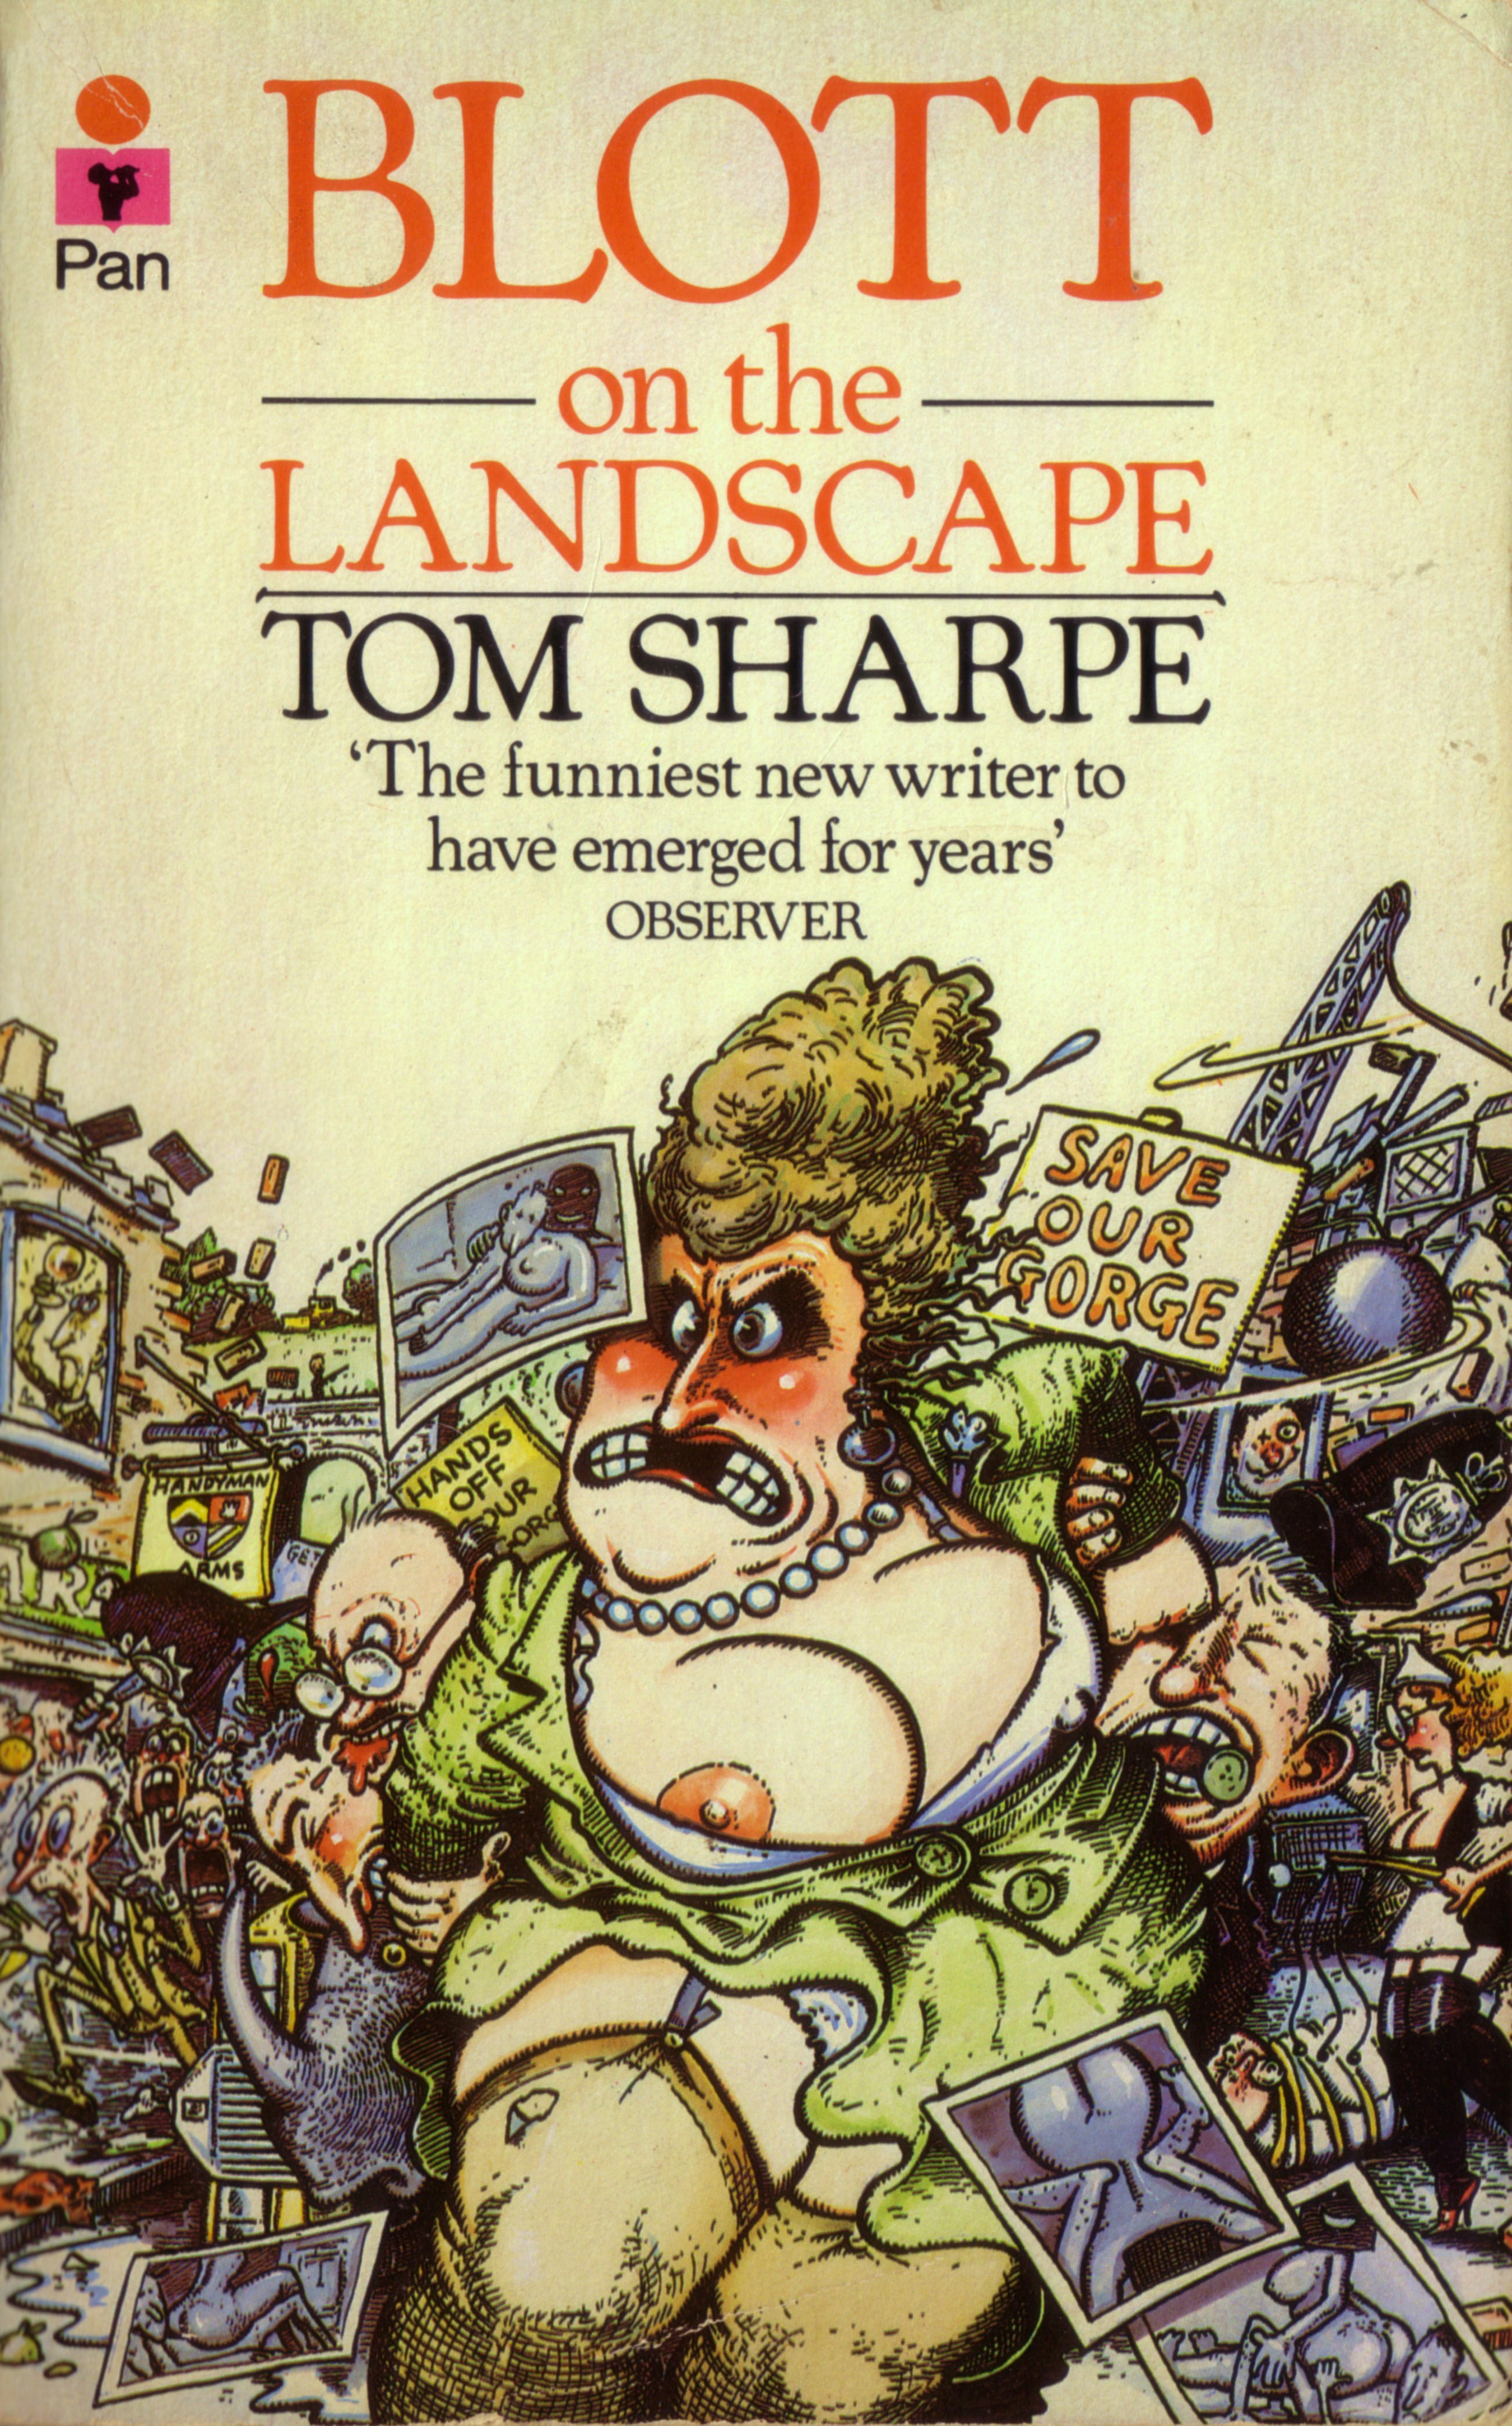 Jacket cover of Blott on the Landscape by Paul Sample